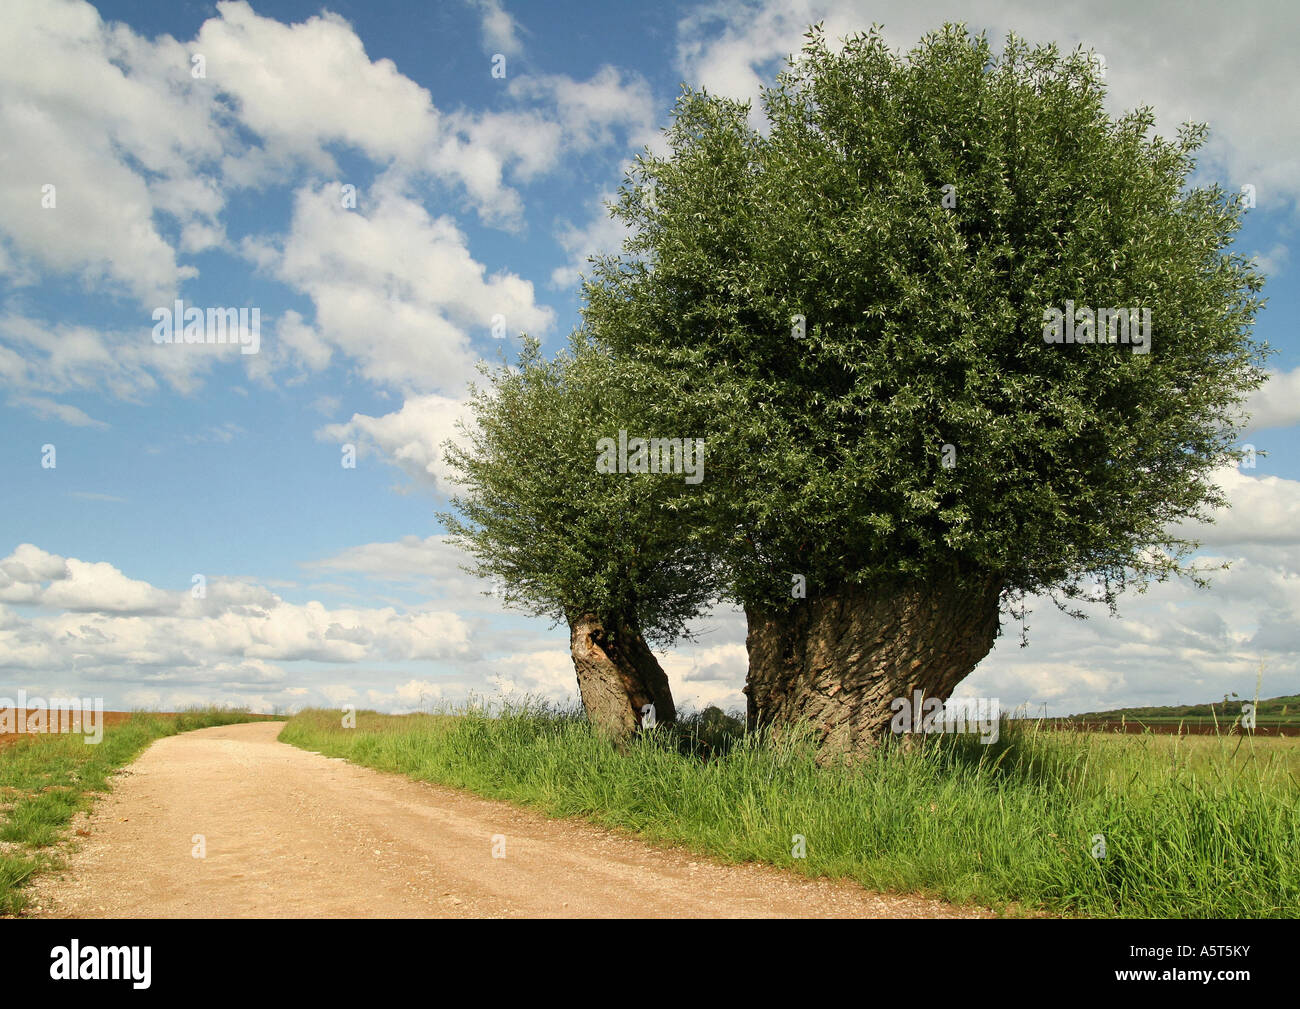 Country road and willow tree, Jura region, France - Stock Image